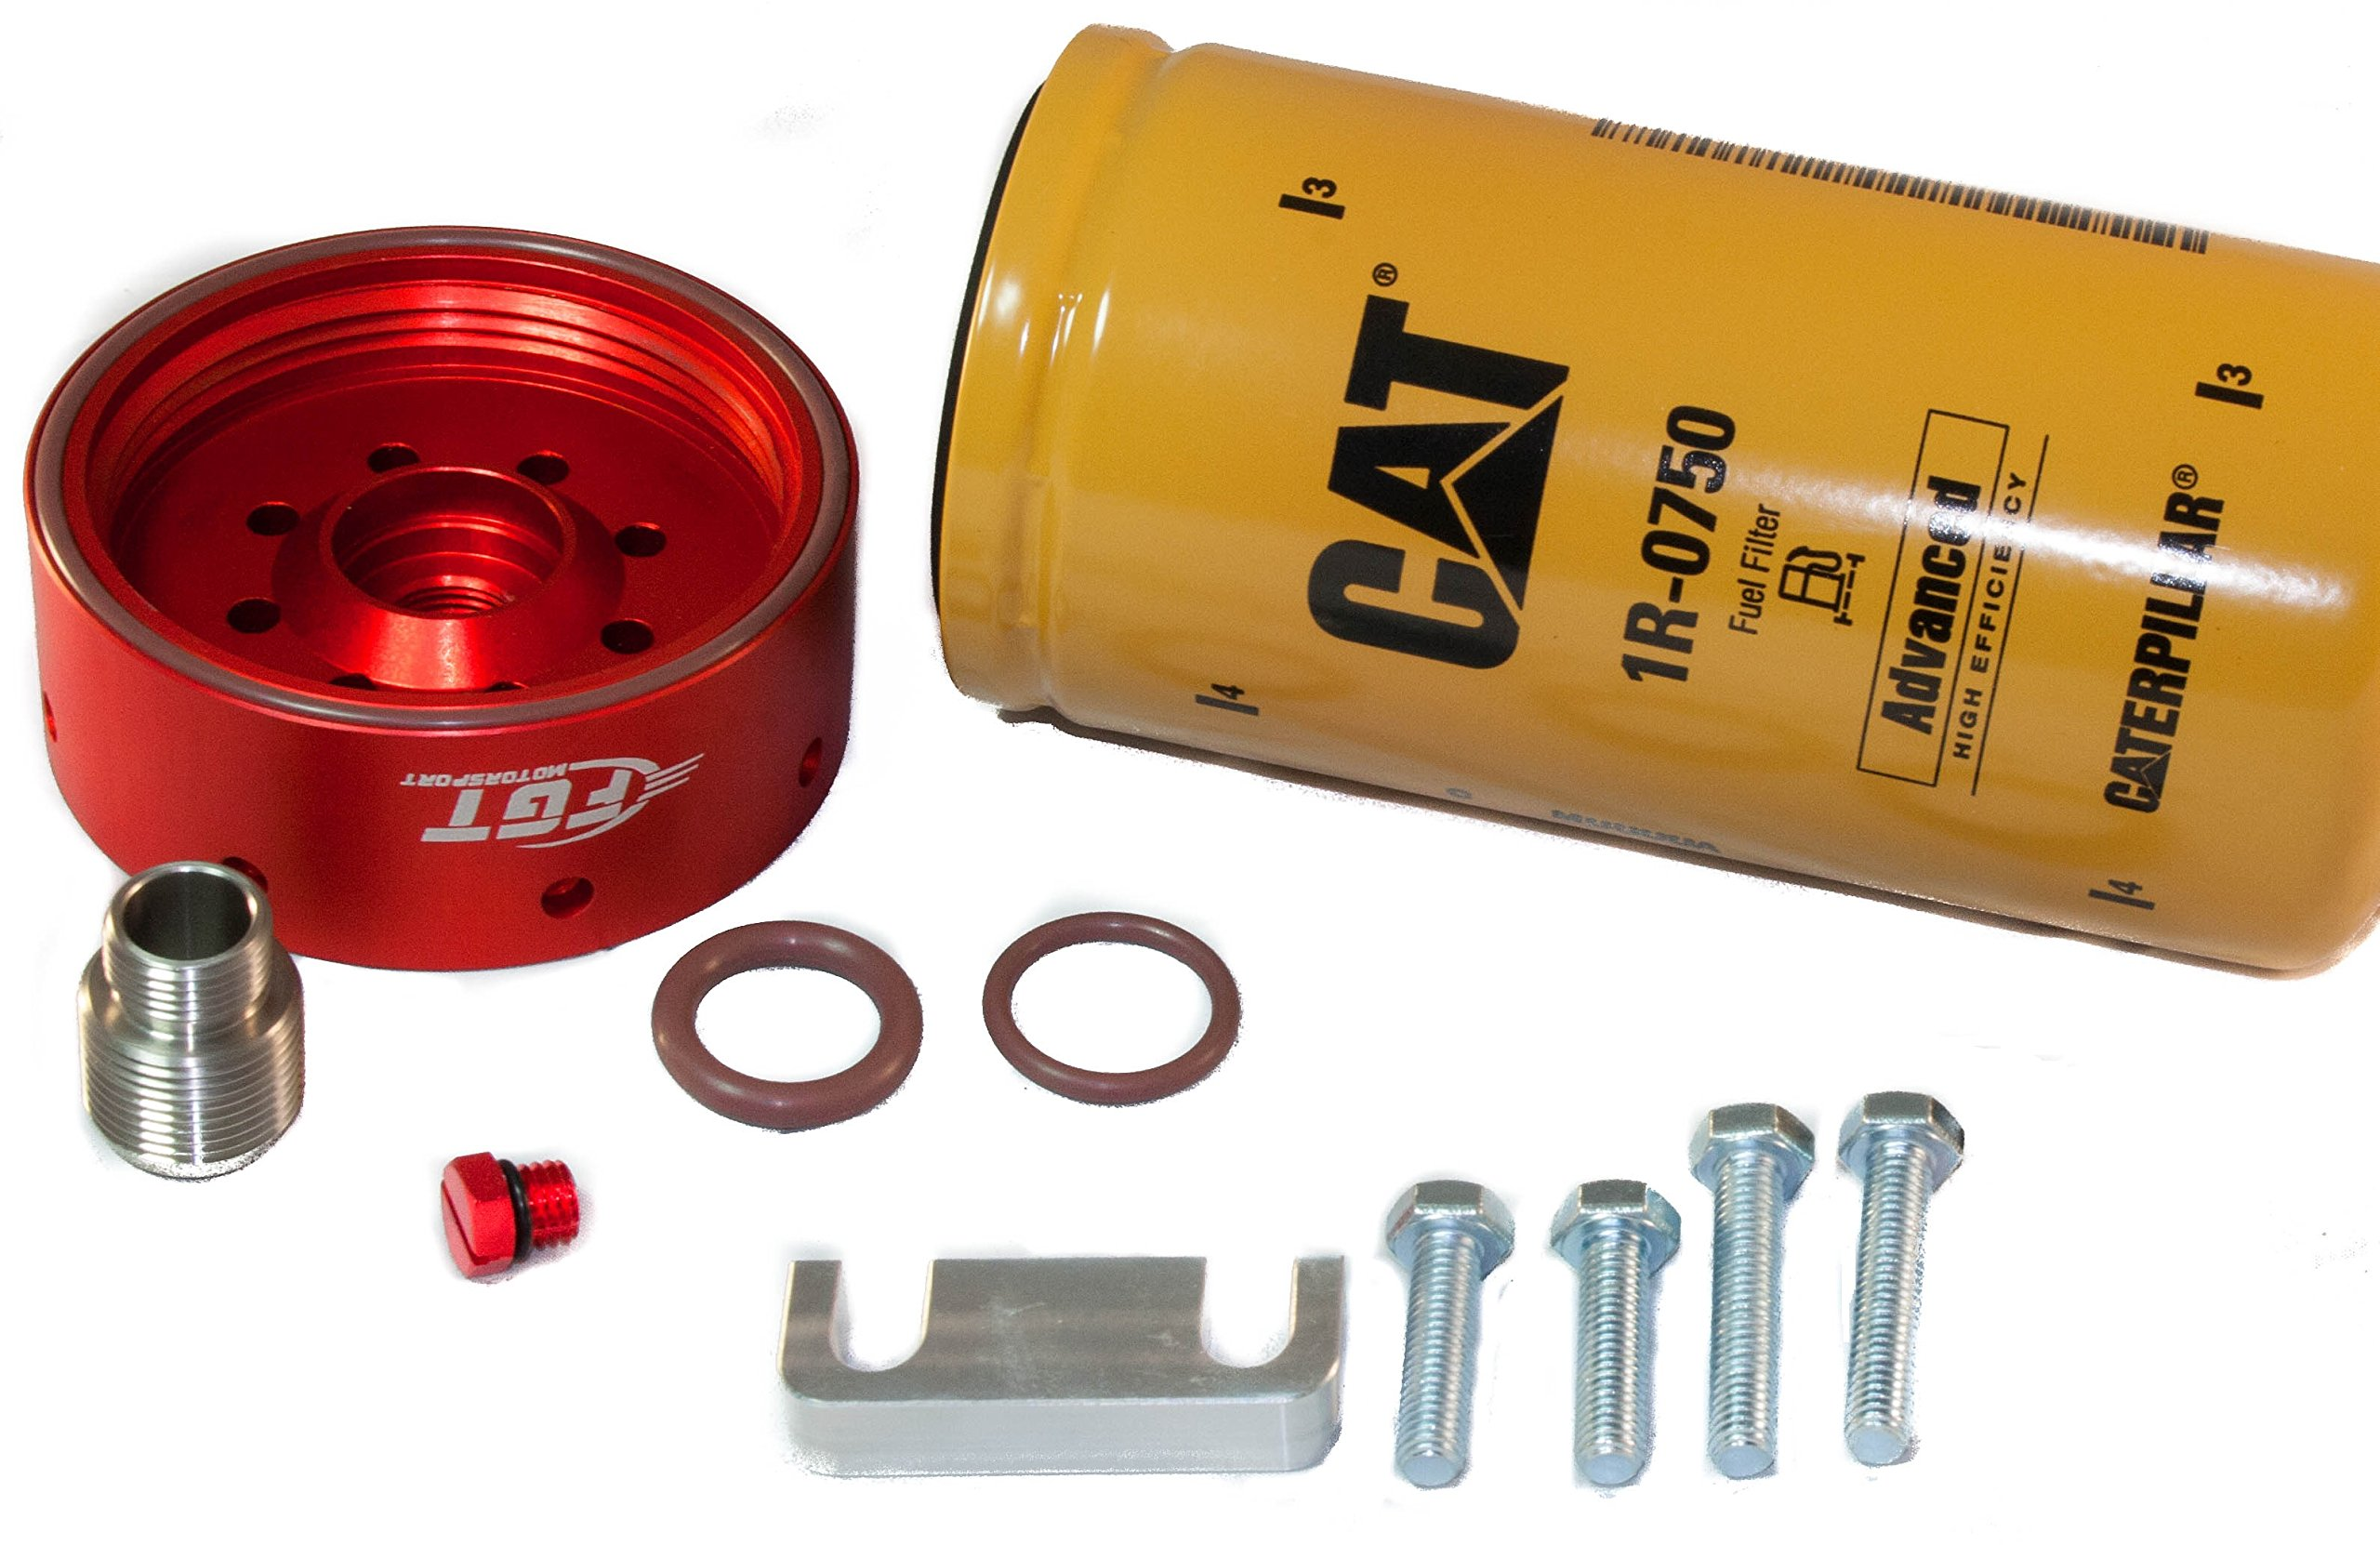 CAT Fuel Filter Adapter Conversion Kit for 2001-2016' Chevy/GMC Duramax  Includes